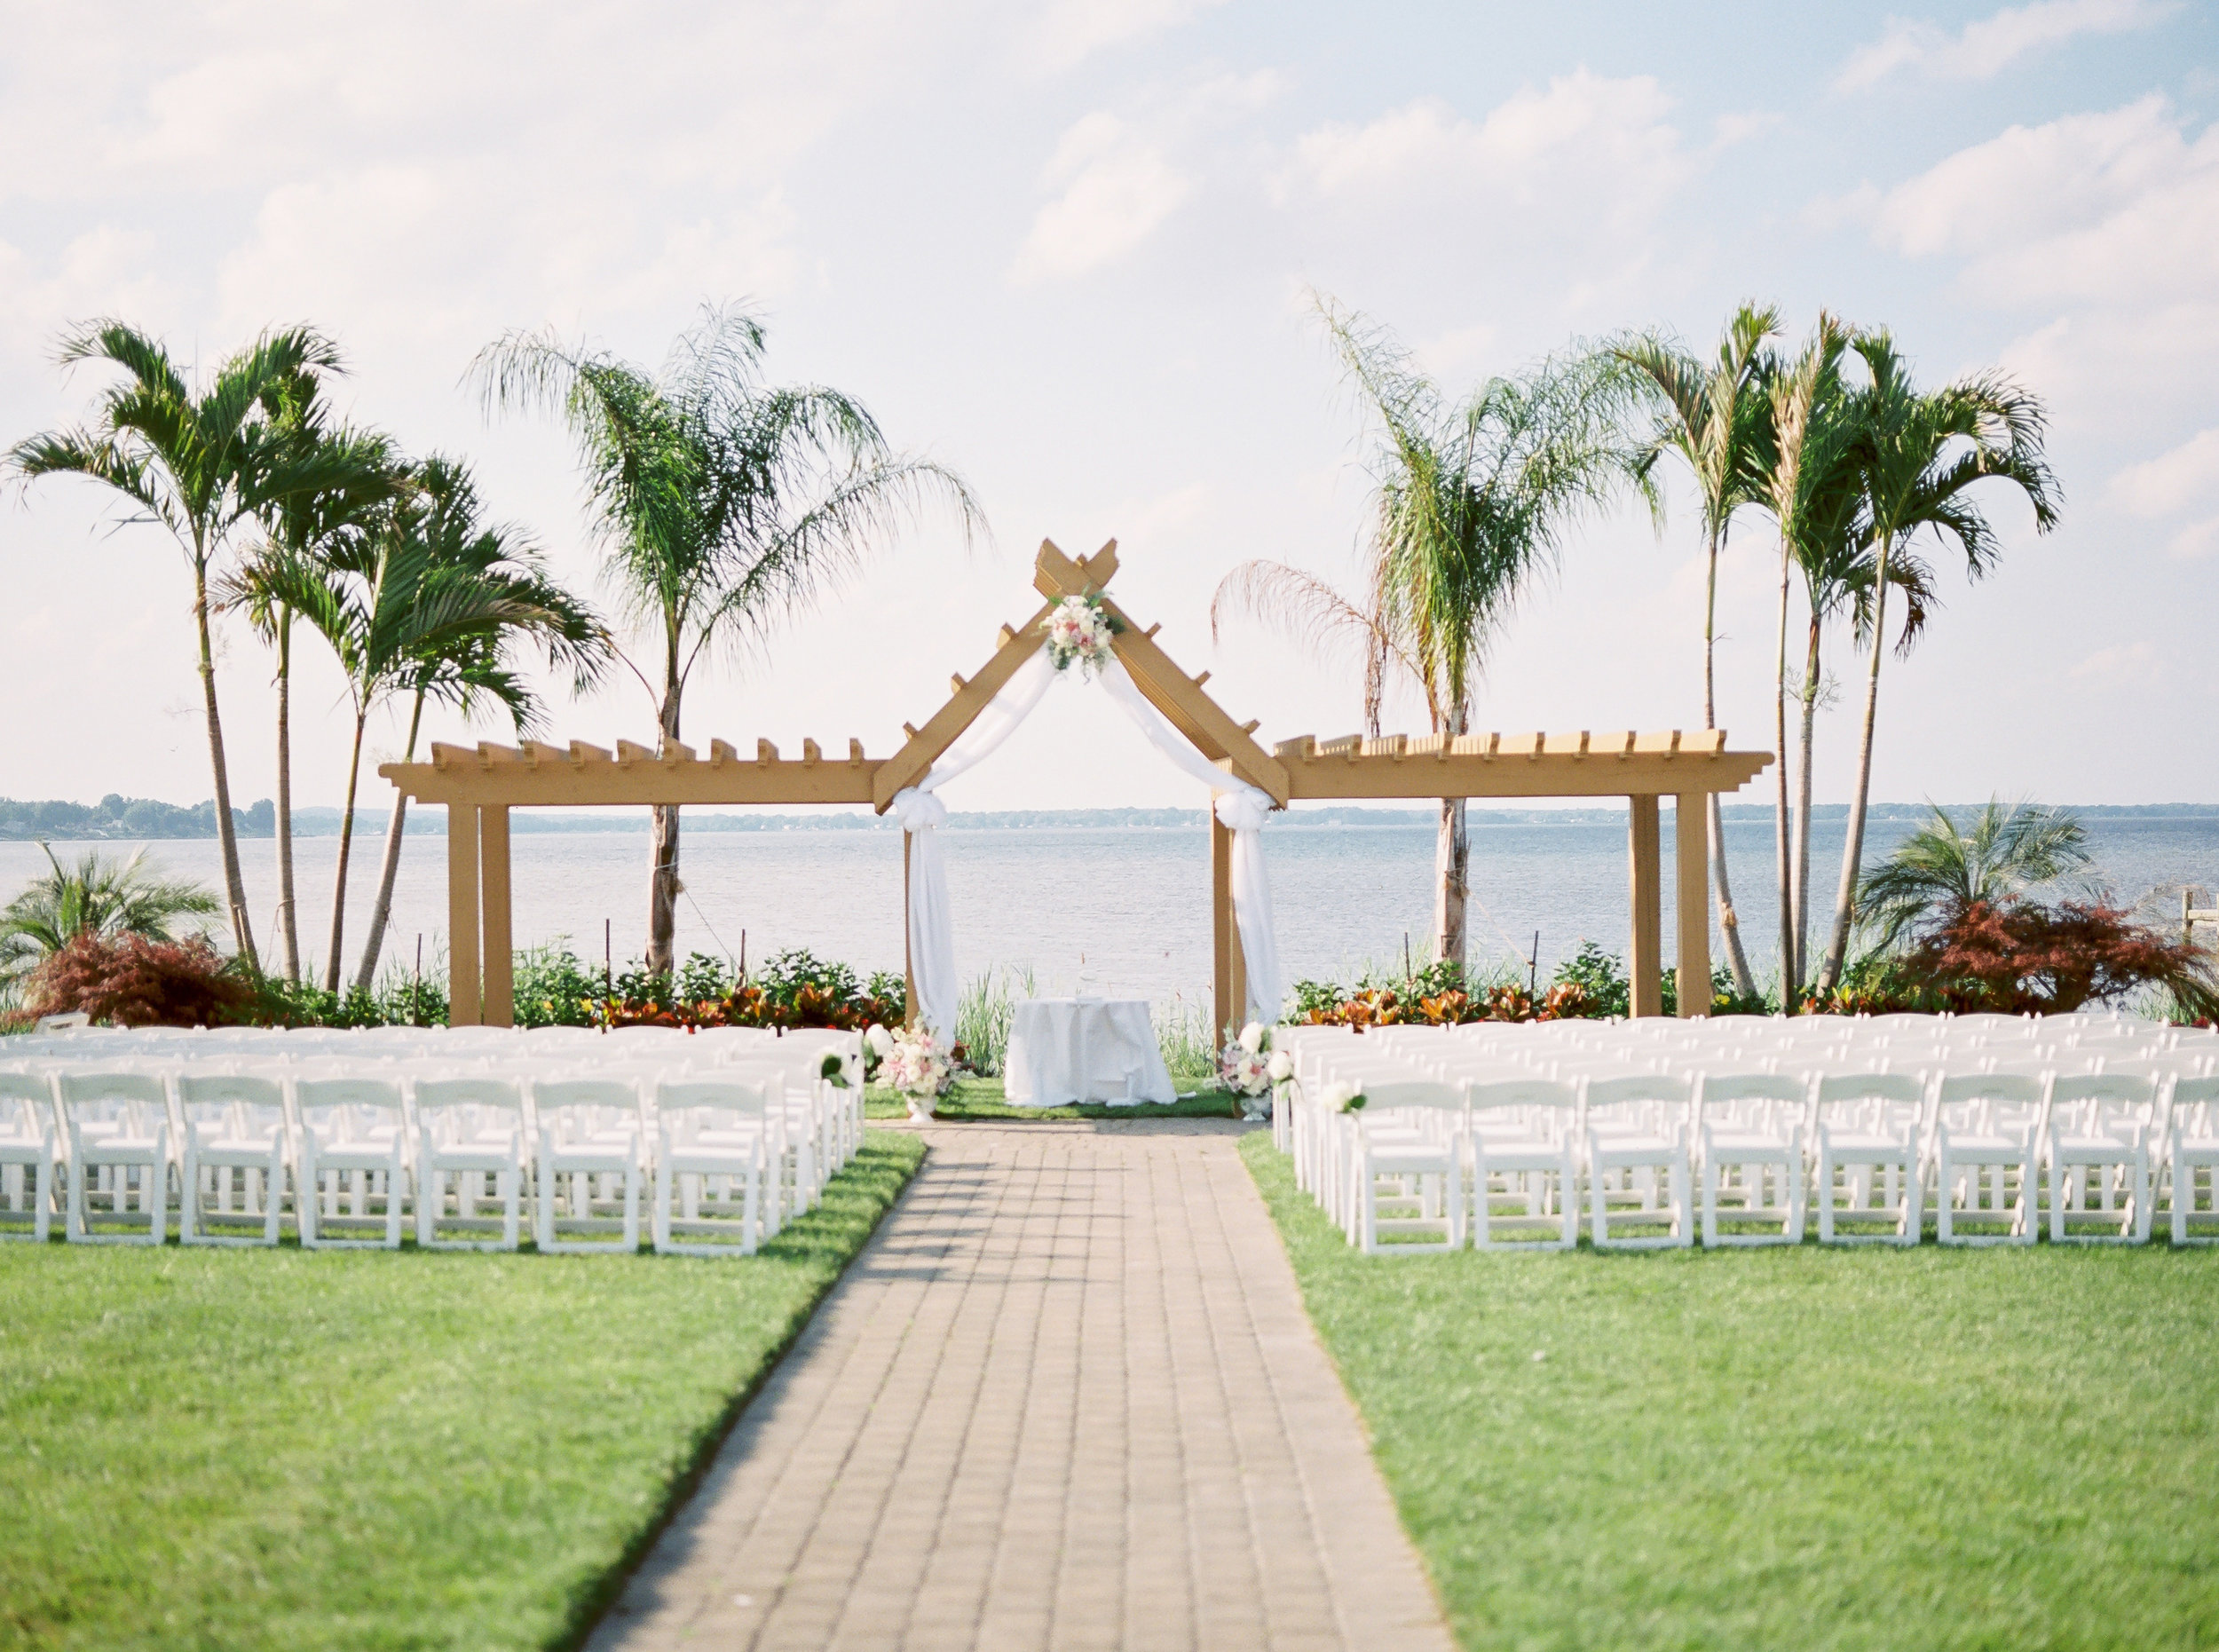 wedding ceremony idea at Harrington on the bay in Maryland